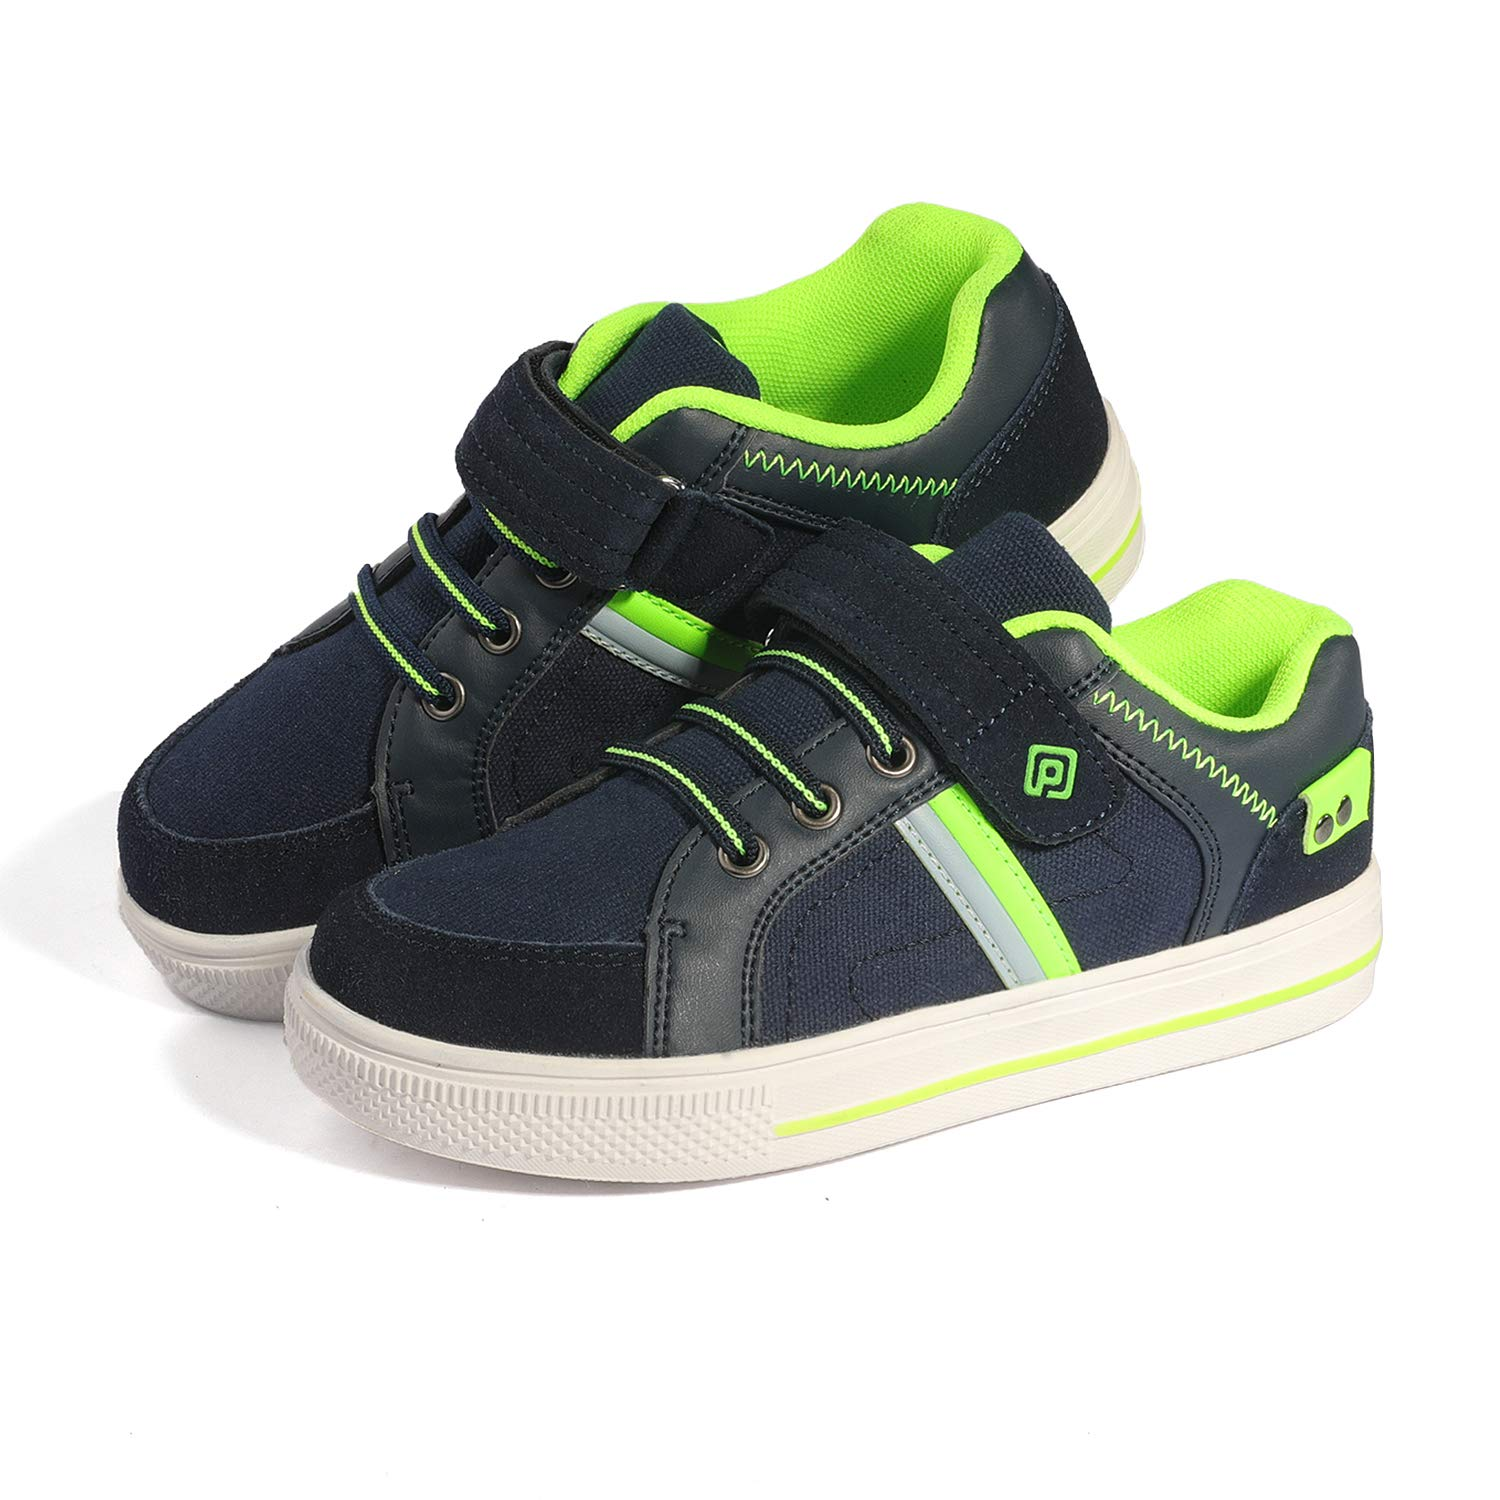 DREAM PAIRS Toddler//Little Kid//Big Kid Fashion Sneakers Loafers Shoes